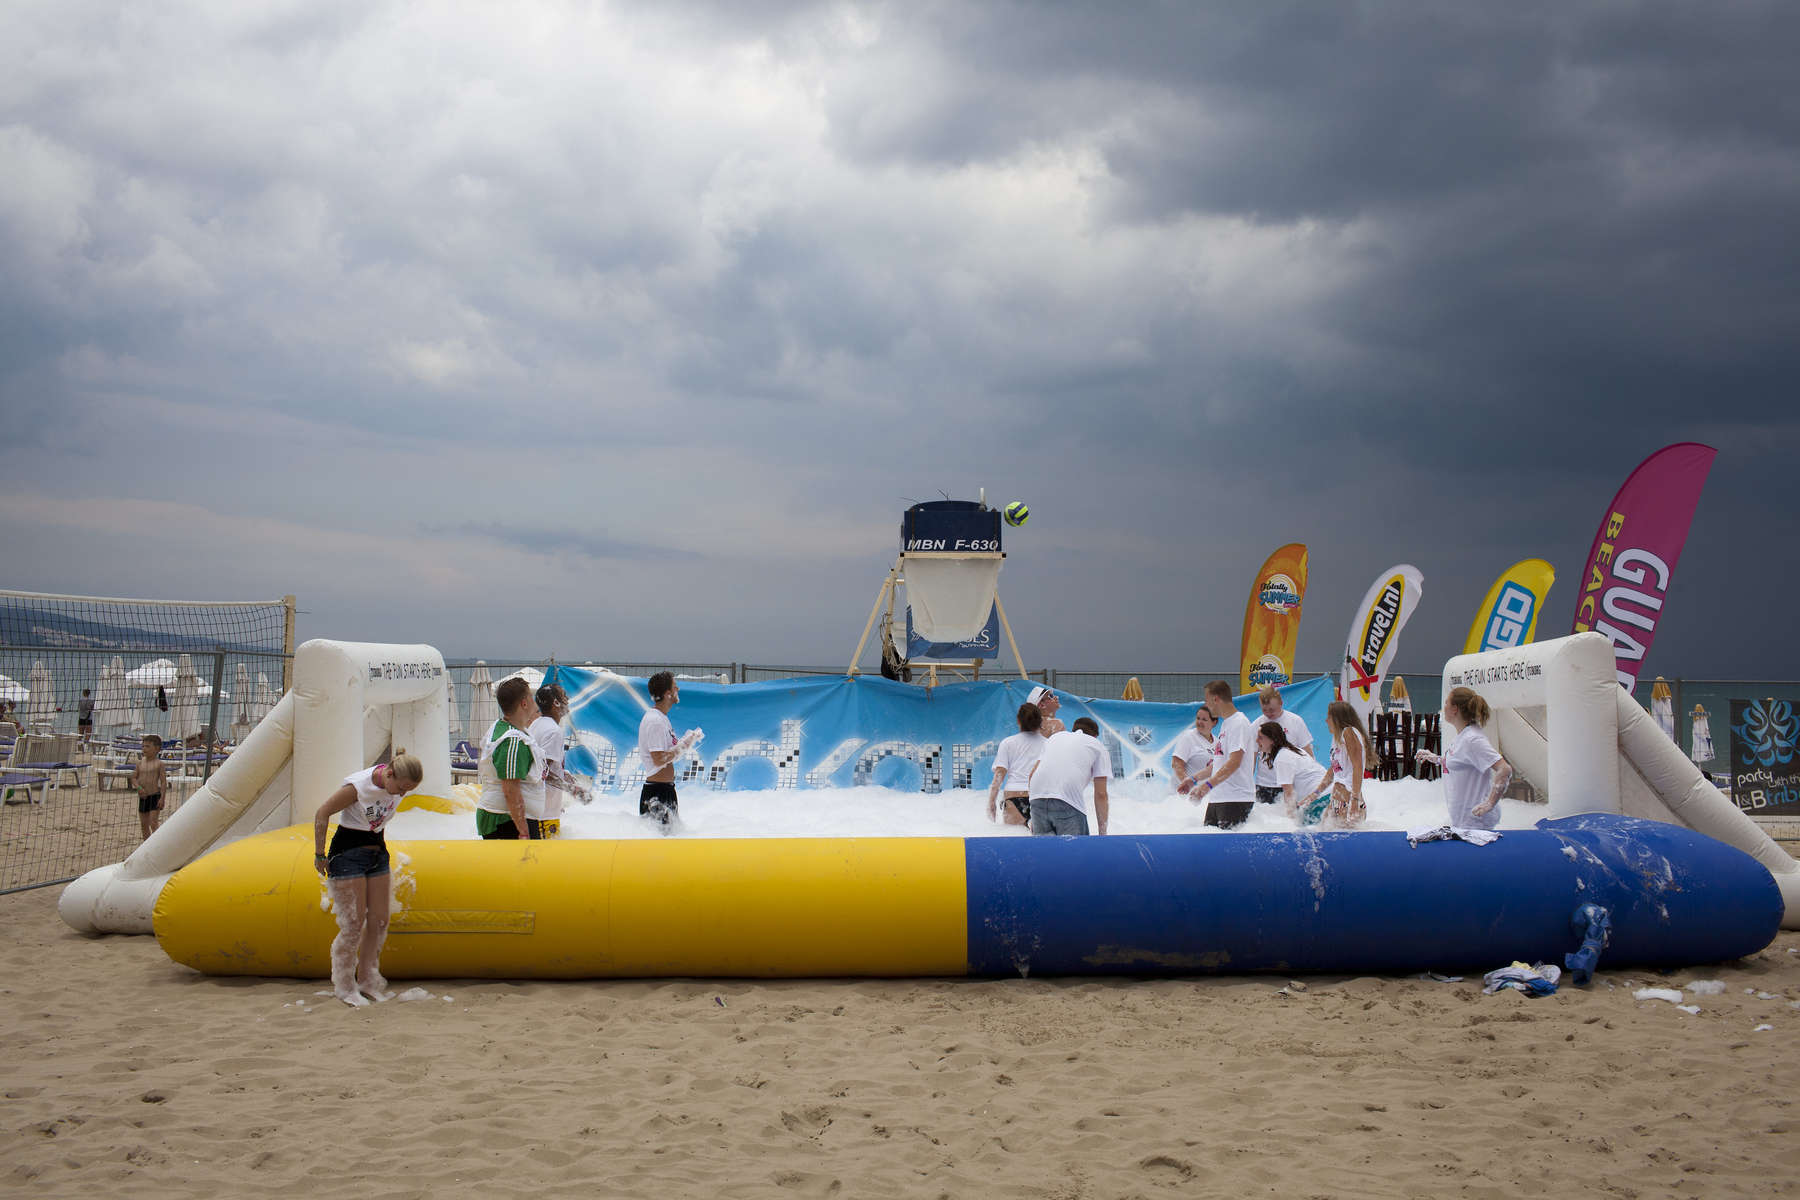 15: 54 An inflatable pool with goals at either end is filled with foam on the beach for a party organised at Sunny Beach, Bulgaria, by promotional entertainments team, The Party Crew. Enjoying the foam, among others, are friends from Norwich, Triston and Tom, with their girlfriends Danielle and Vicky.